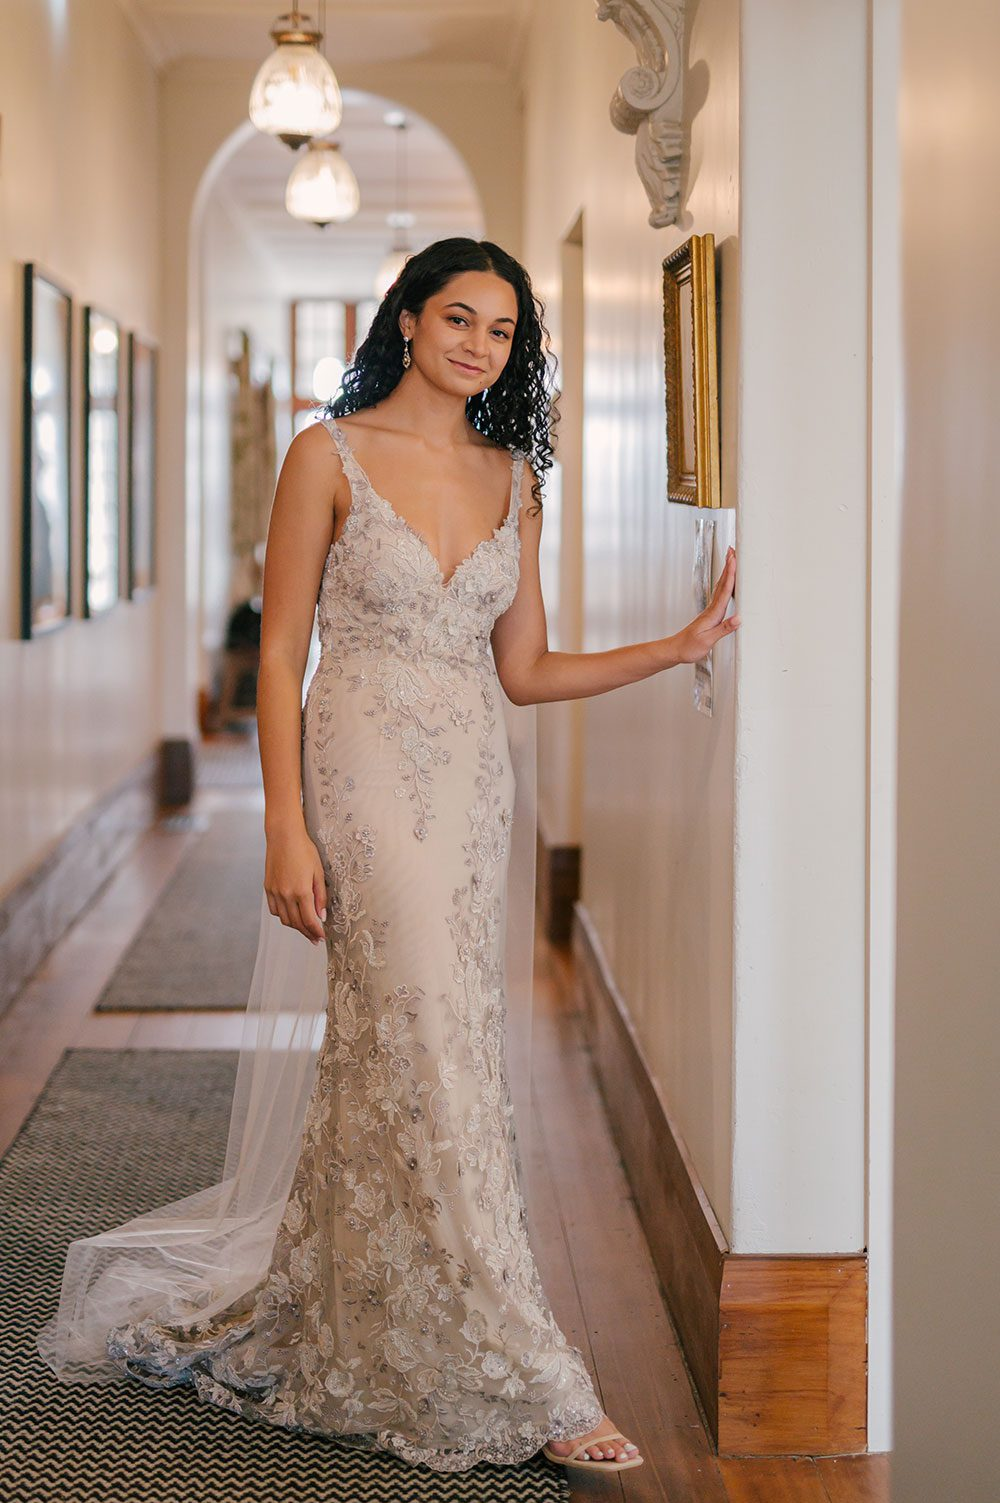 Bride wearing Kazumi Gown in soft grey with hand embellished lace and a low back - in hall